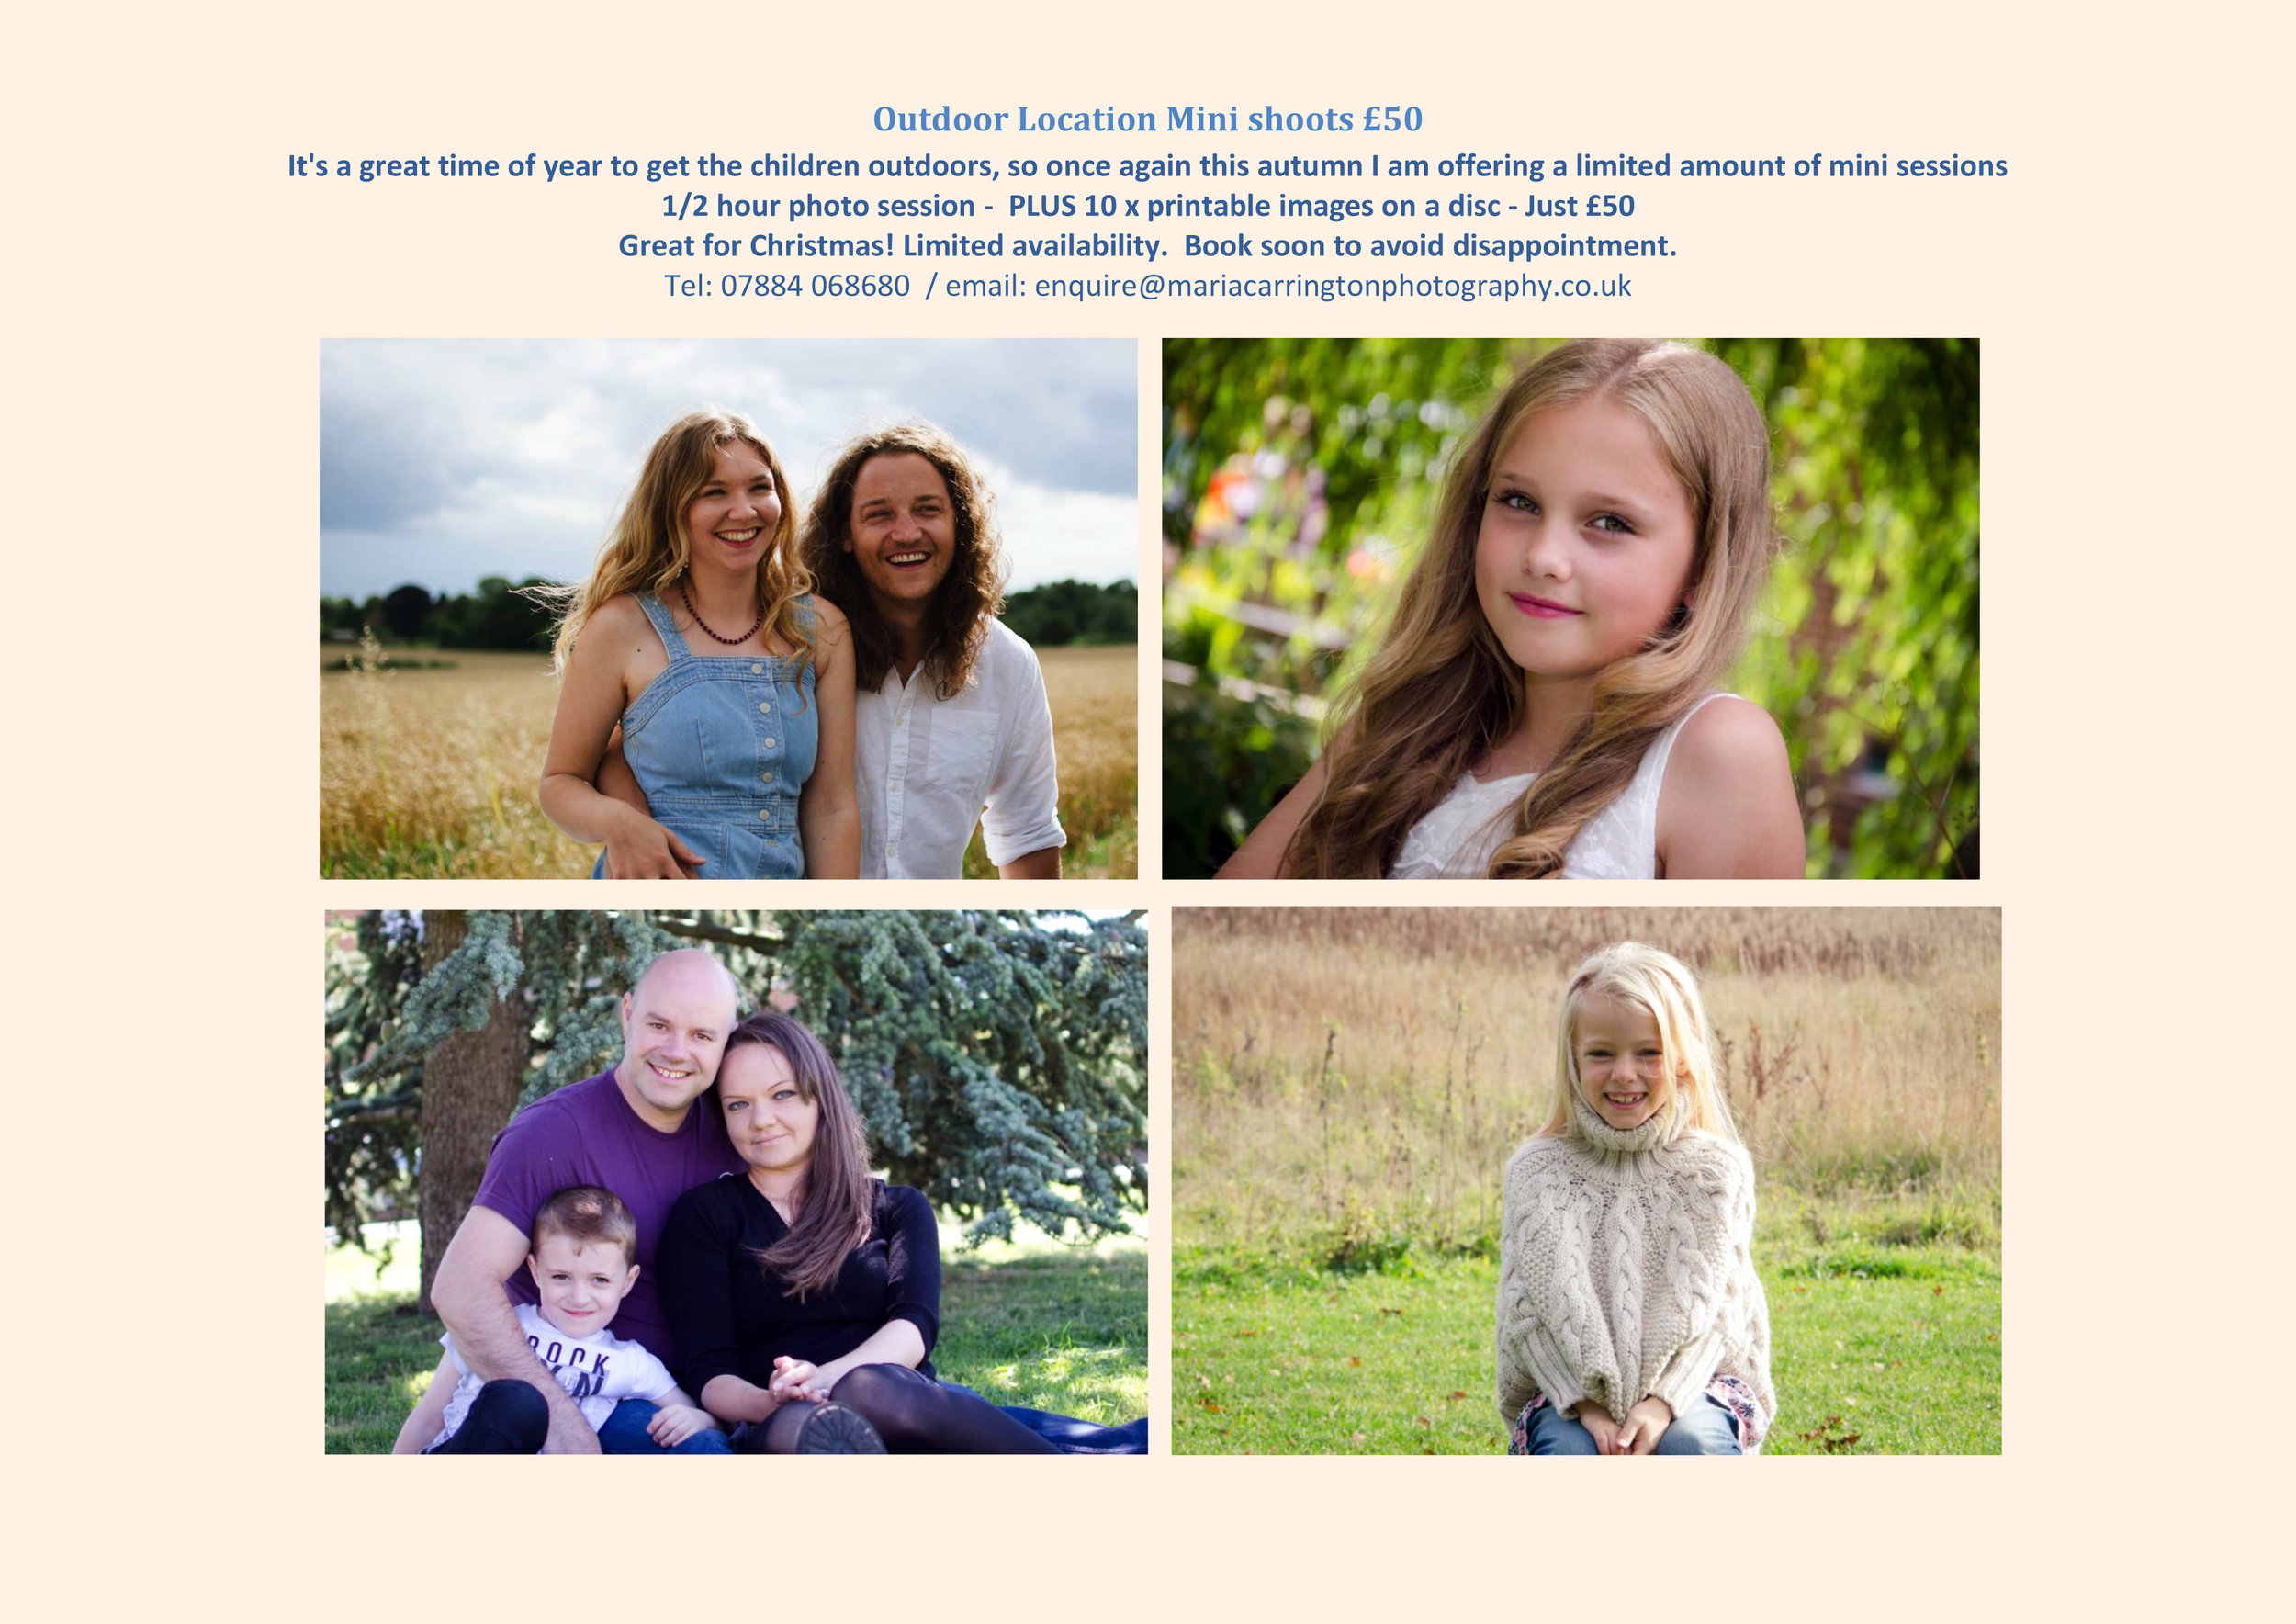 Autumn Special Offer - Outdoor Location Mini shoots £50    It's a great time of year to get the children outdoors, so once again this autumn I am offering a limited amount of mini sessions    1/2 hour photo session - PLUS 10 x printable images on a disc - Just £50    Great for Christmas! Limited availability. Book soon to avoid disappointment.    Tel: 07884 068680 / email: enquire@mariacarringtonphotography.co. uk